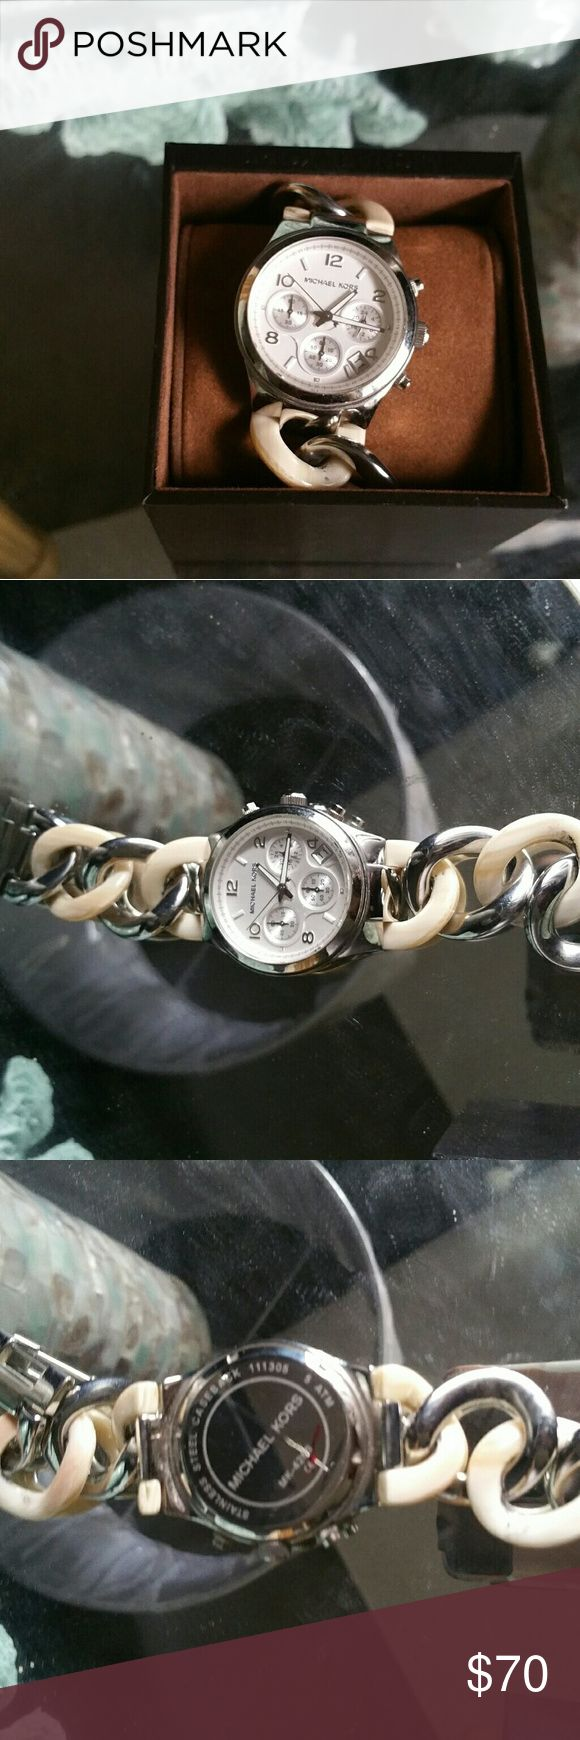 Authentic Michael Kors Watch Michael Kors watch bracelet style. Needs battery. Michael Kors Accessories Watches